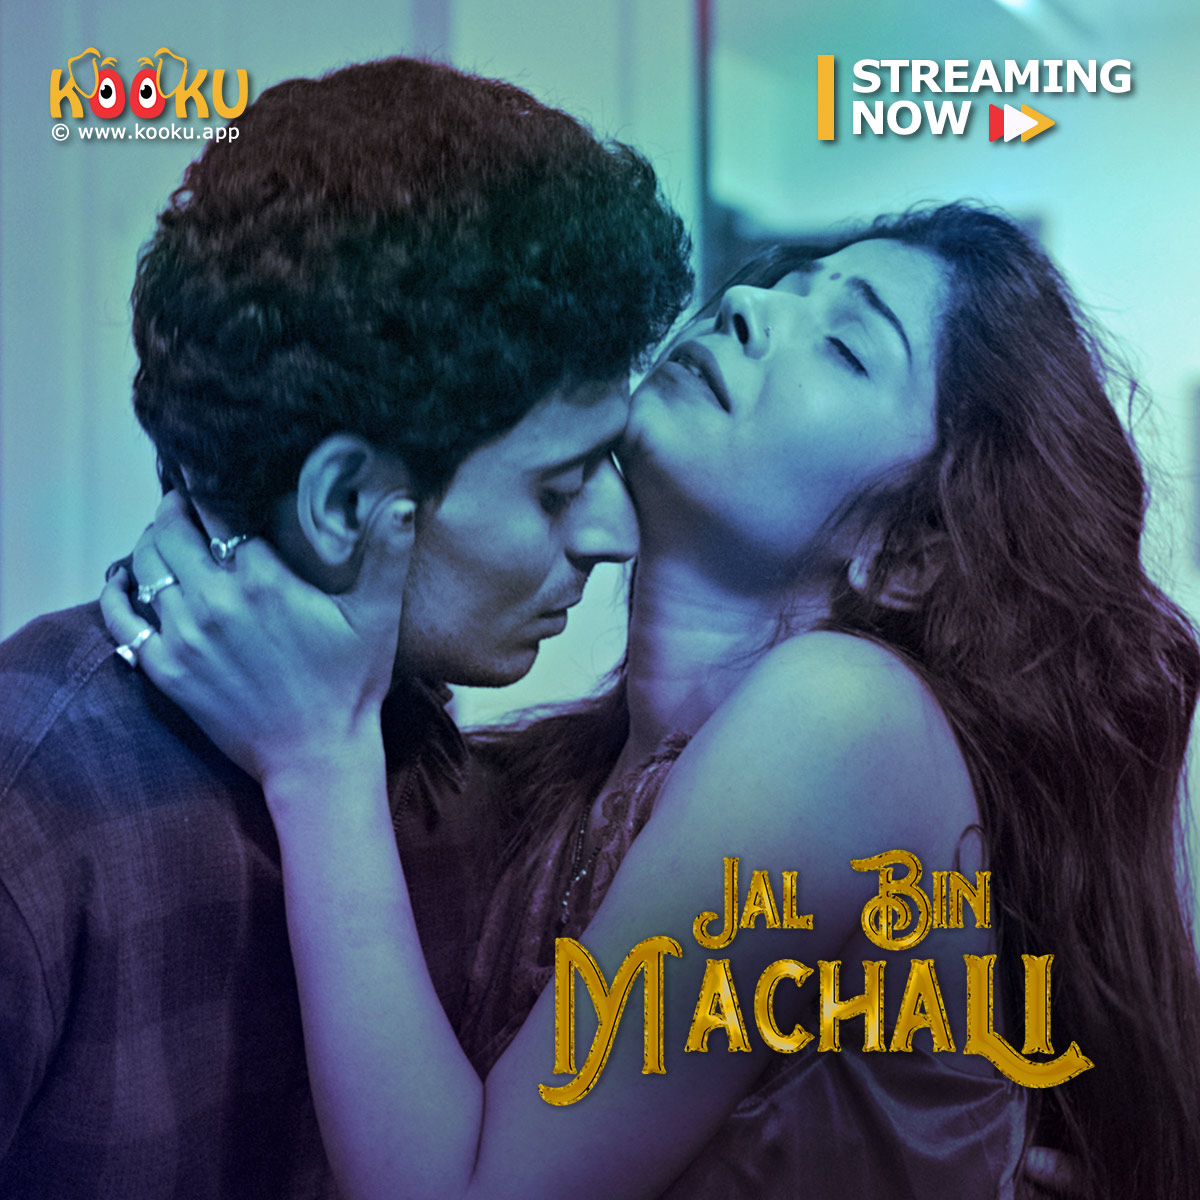 Jal Bin Machali 2020 S01 Hindi Kooku App Complete Web Series 720p HDRip 530MB Download